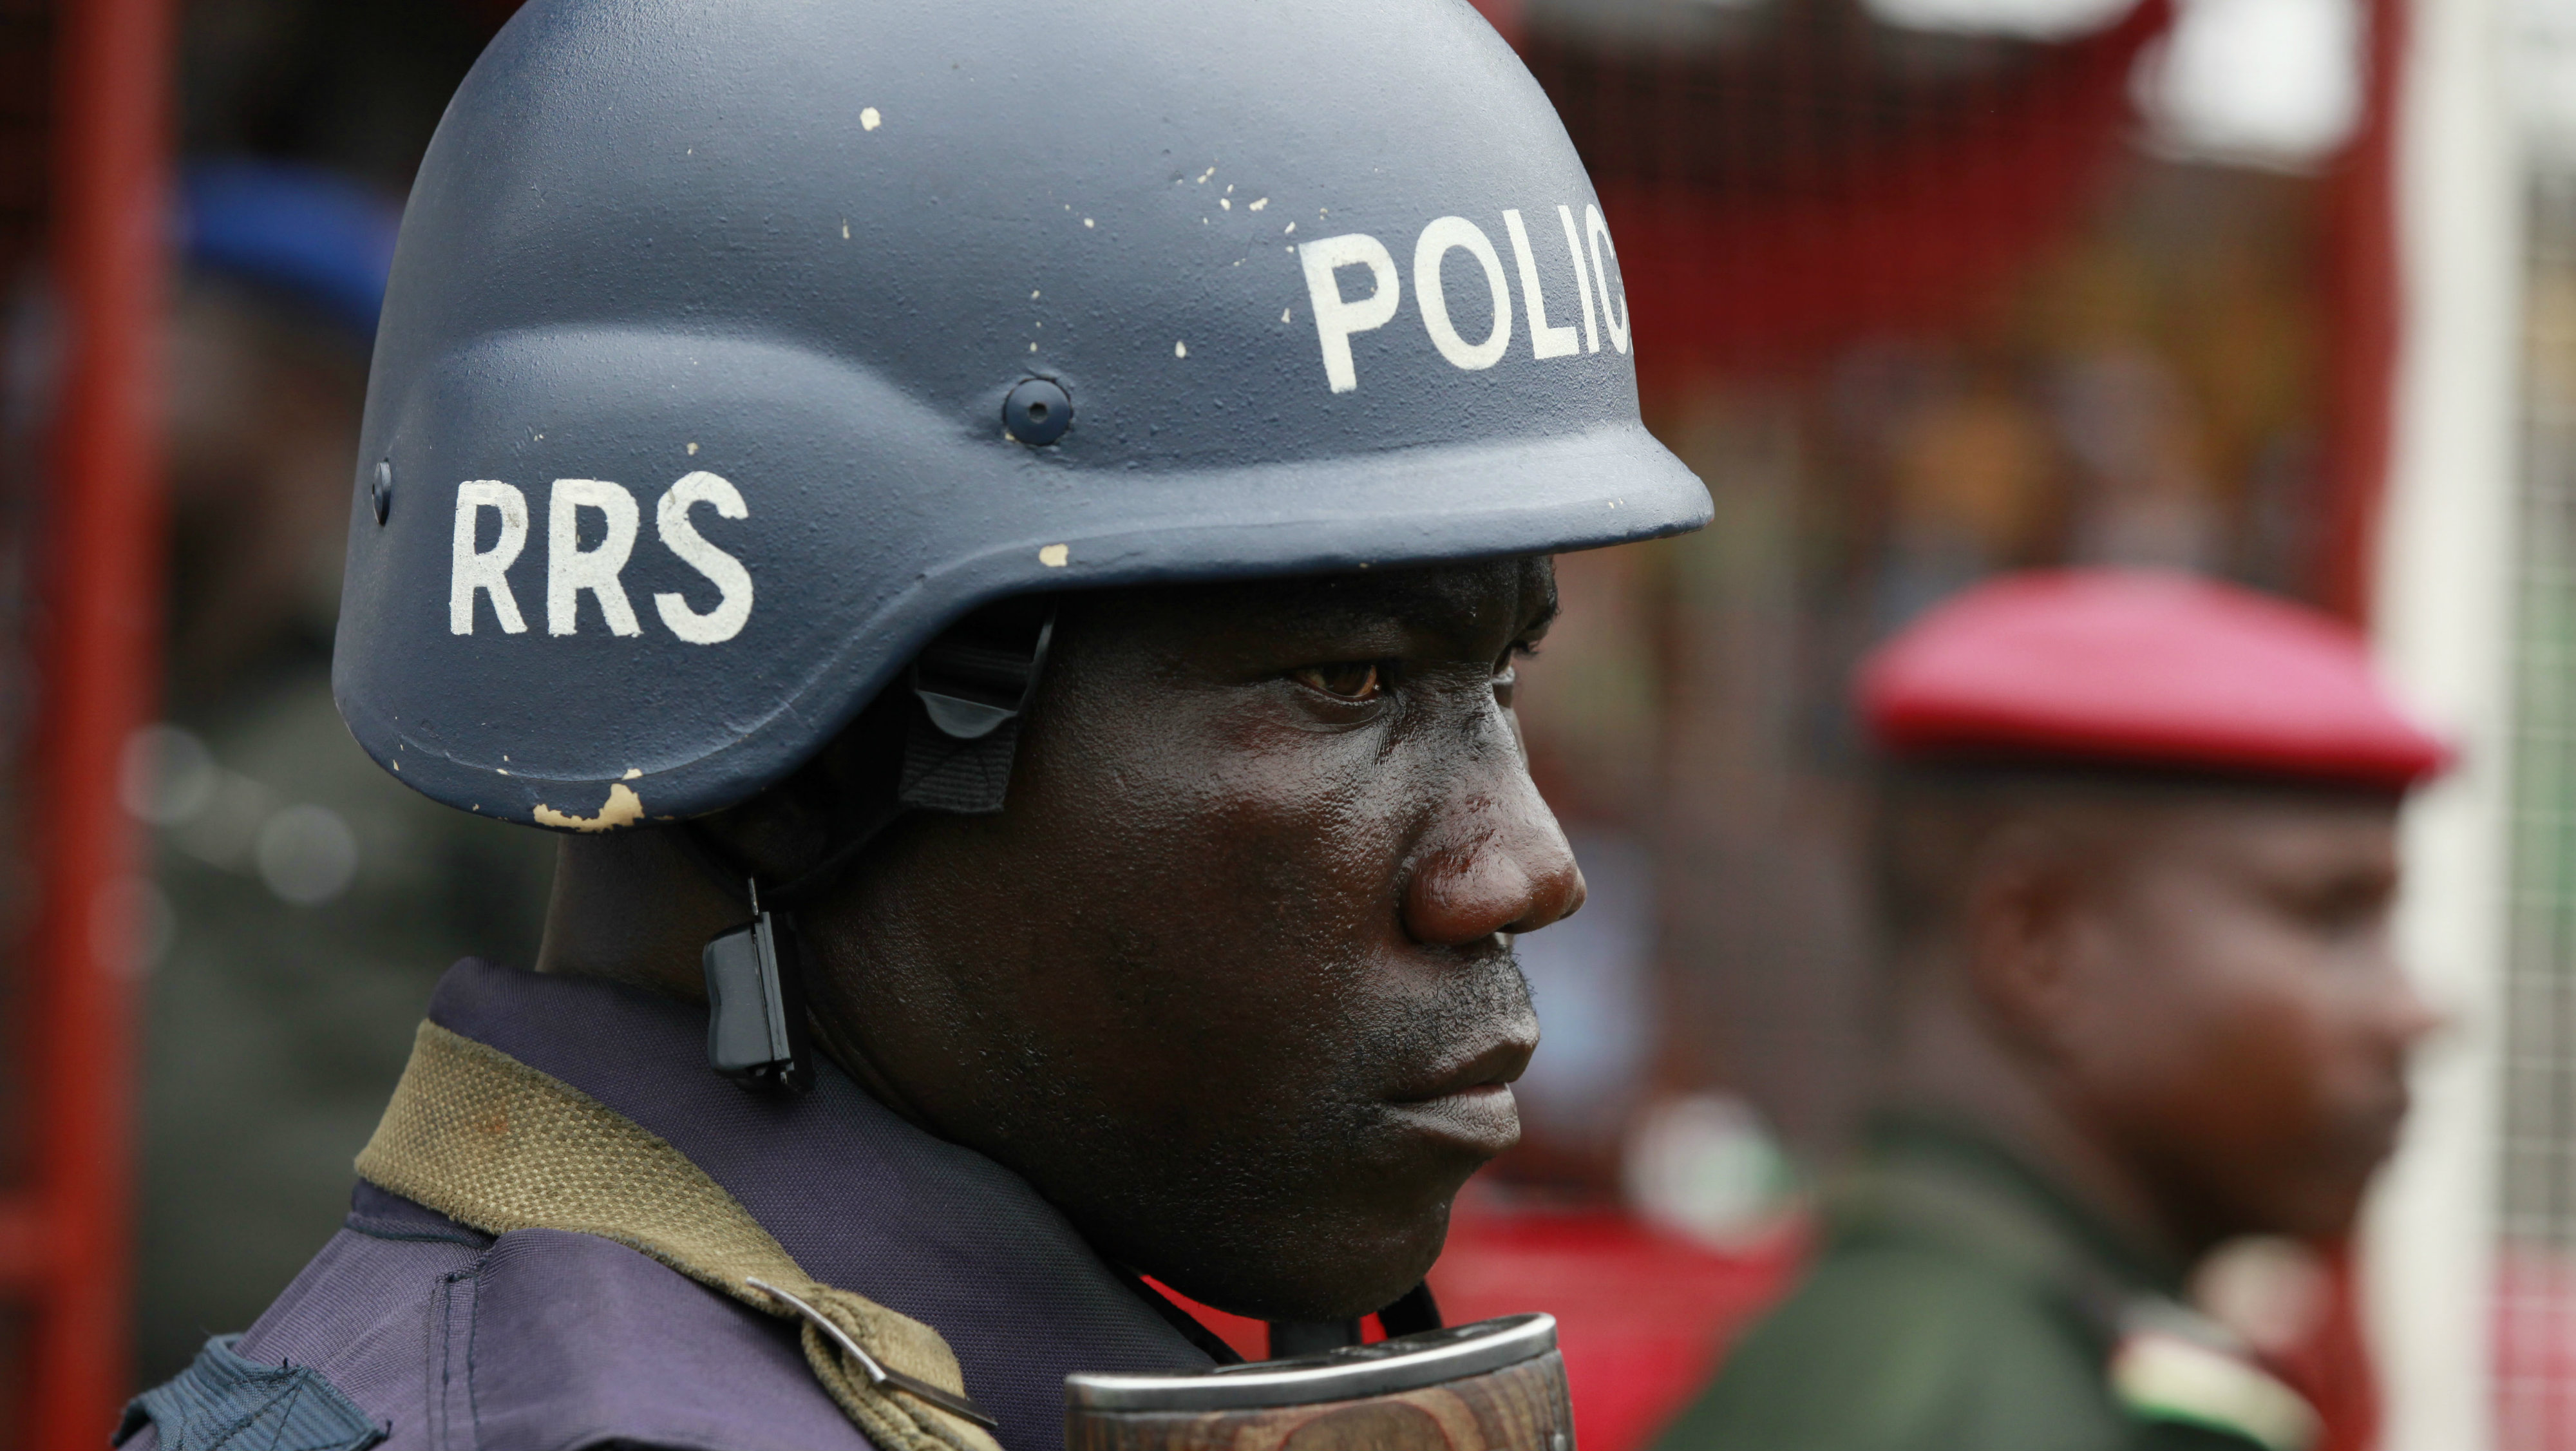 In this Thursday, May. 1, 2014 file photo, a police officer stand guards during a demonstration in Lagos, Nigeria. An elite Nigerian police squad set up to combat violent crime is torturing detainees to extract lucrative bribes and confessions, Amnesty International said in a report published Wednesday Sept. 21, 2016. The report says the Special Anti-Robbery Squad demands bribes, steals and extorts money from criminal suspects and their families.